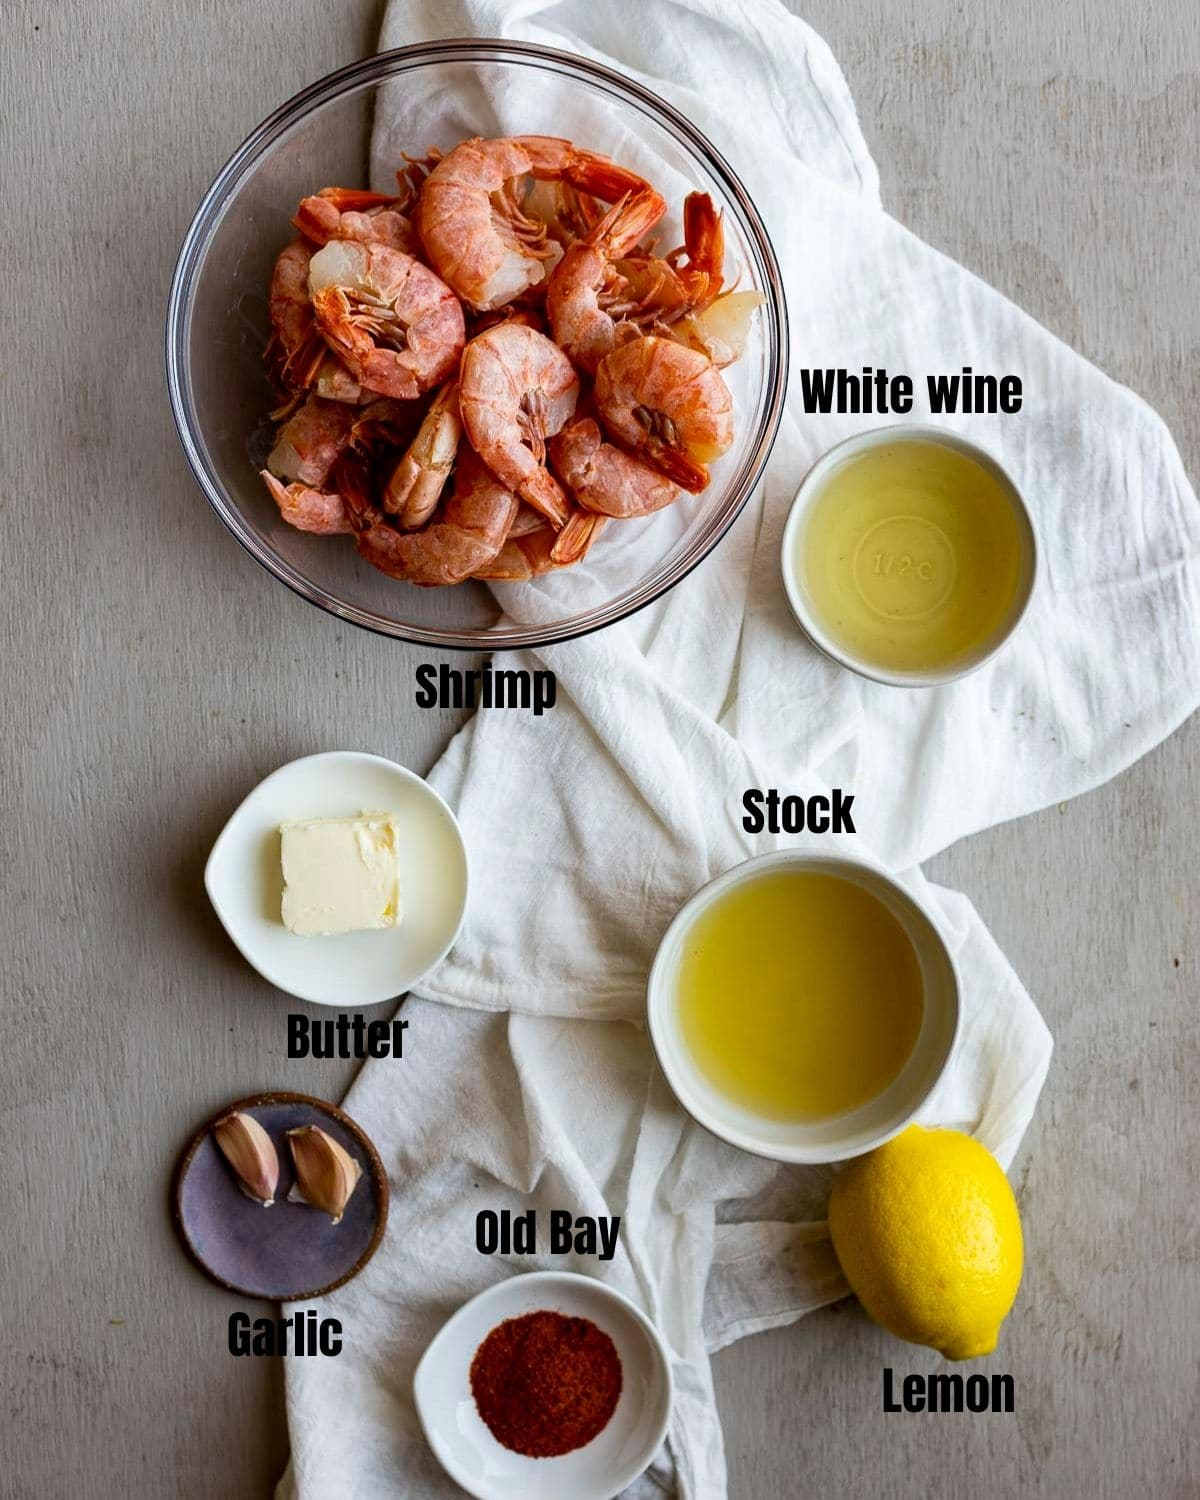 Ingredients to make Instant Pot shrimp arranged individually and labelled.